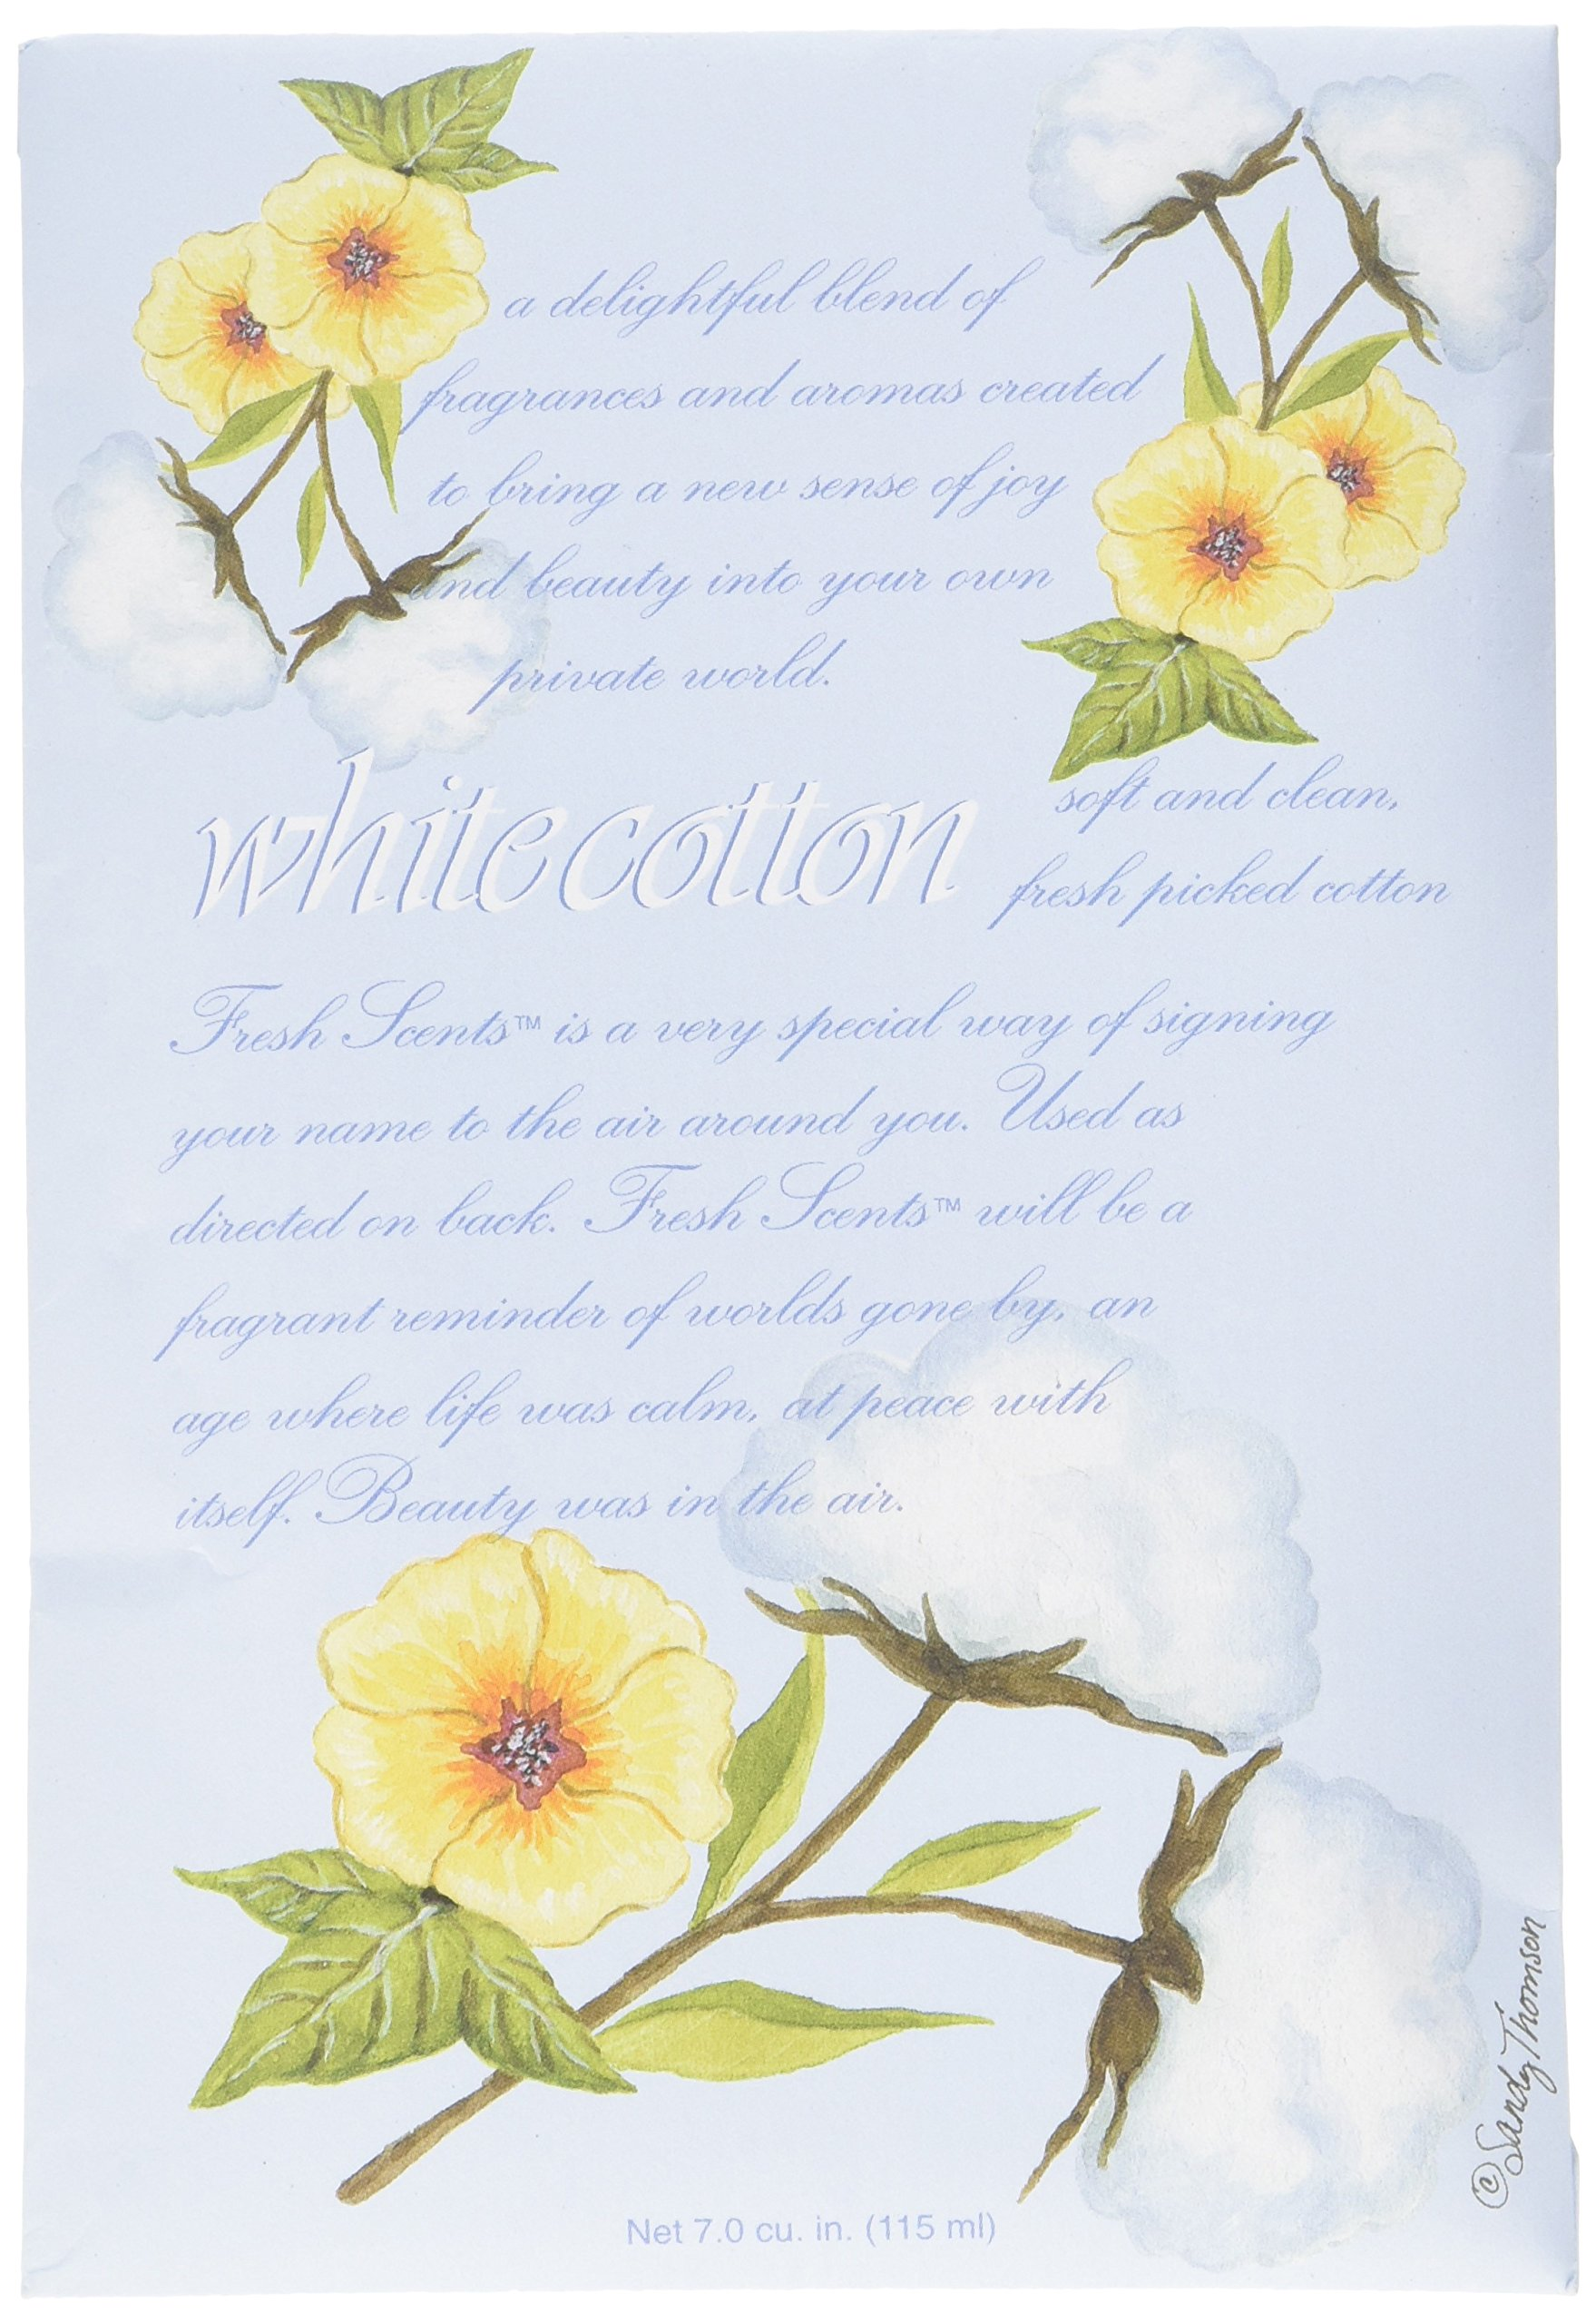 WILLOWBROOK Fresh Scents Scented Sachet White Cotton